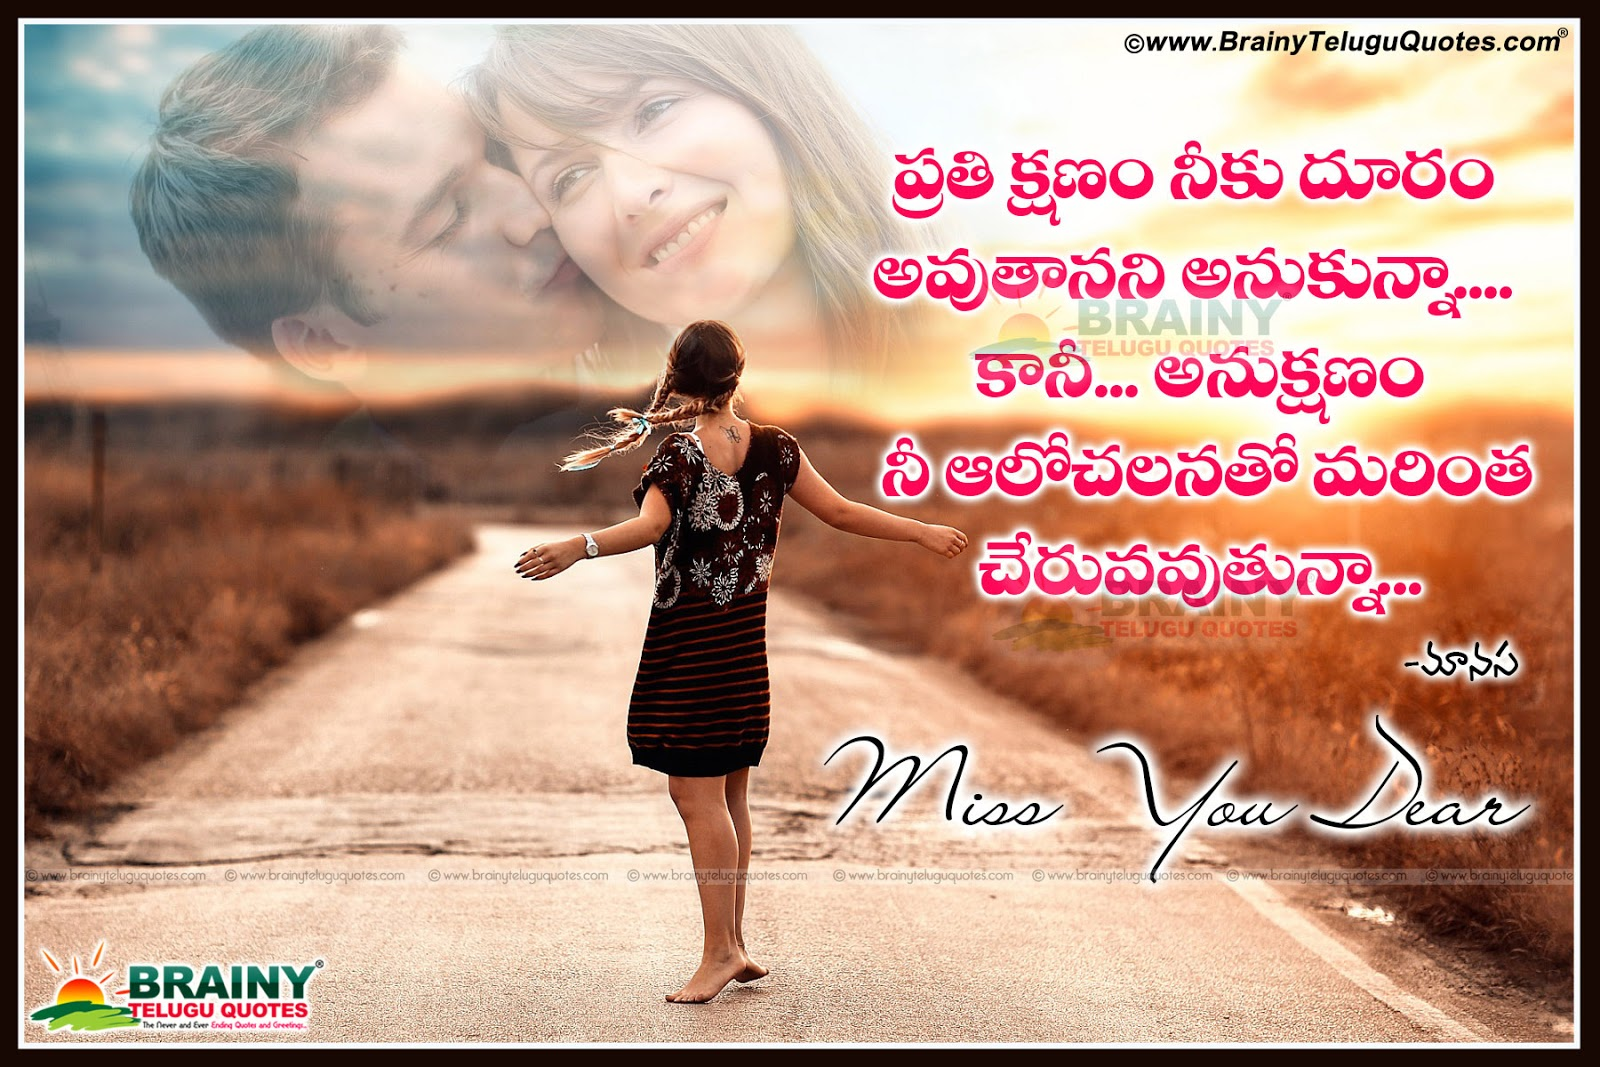 Love Feeling Quotes In Telugu: Heart Touching Telugu Love Feelings Images With Love Hd